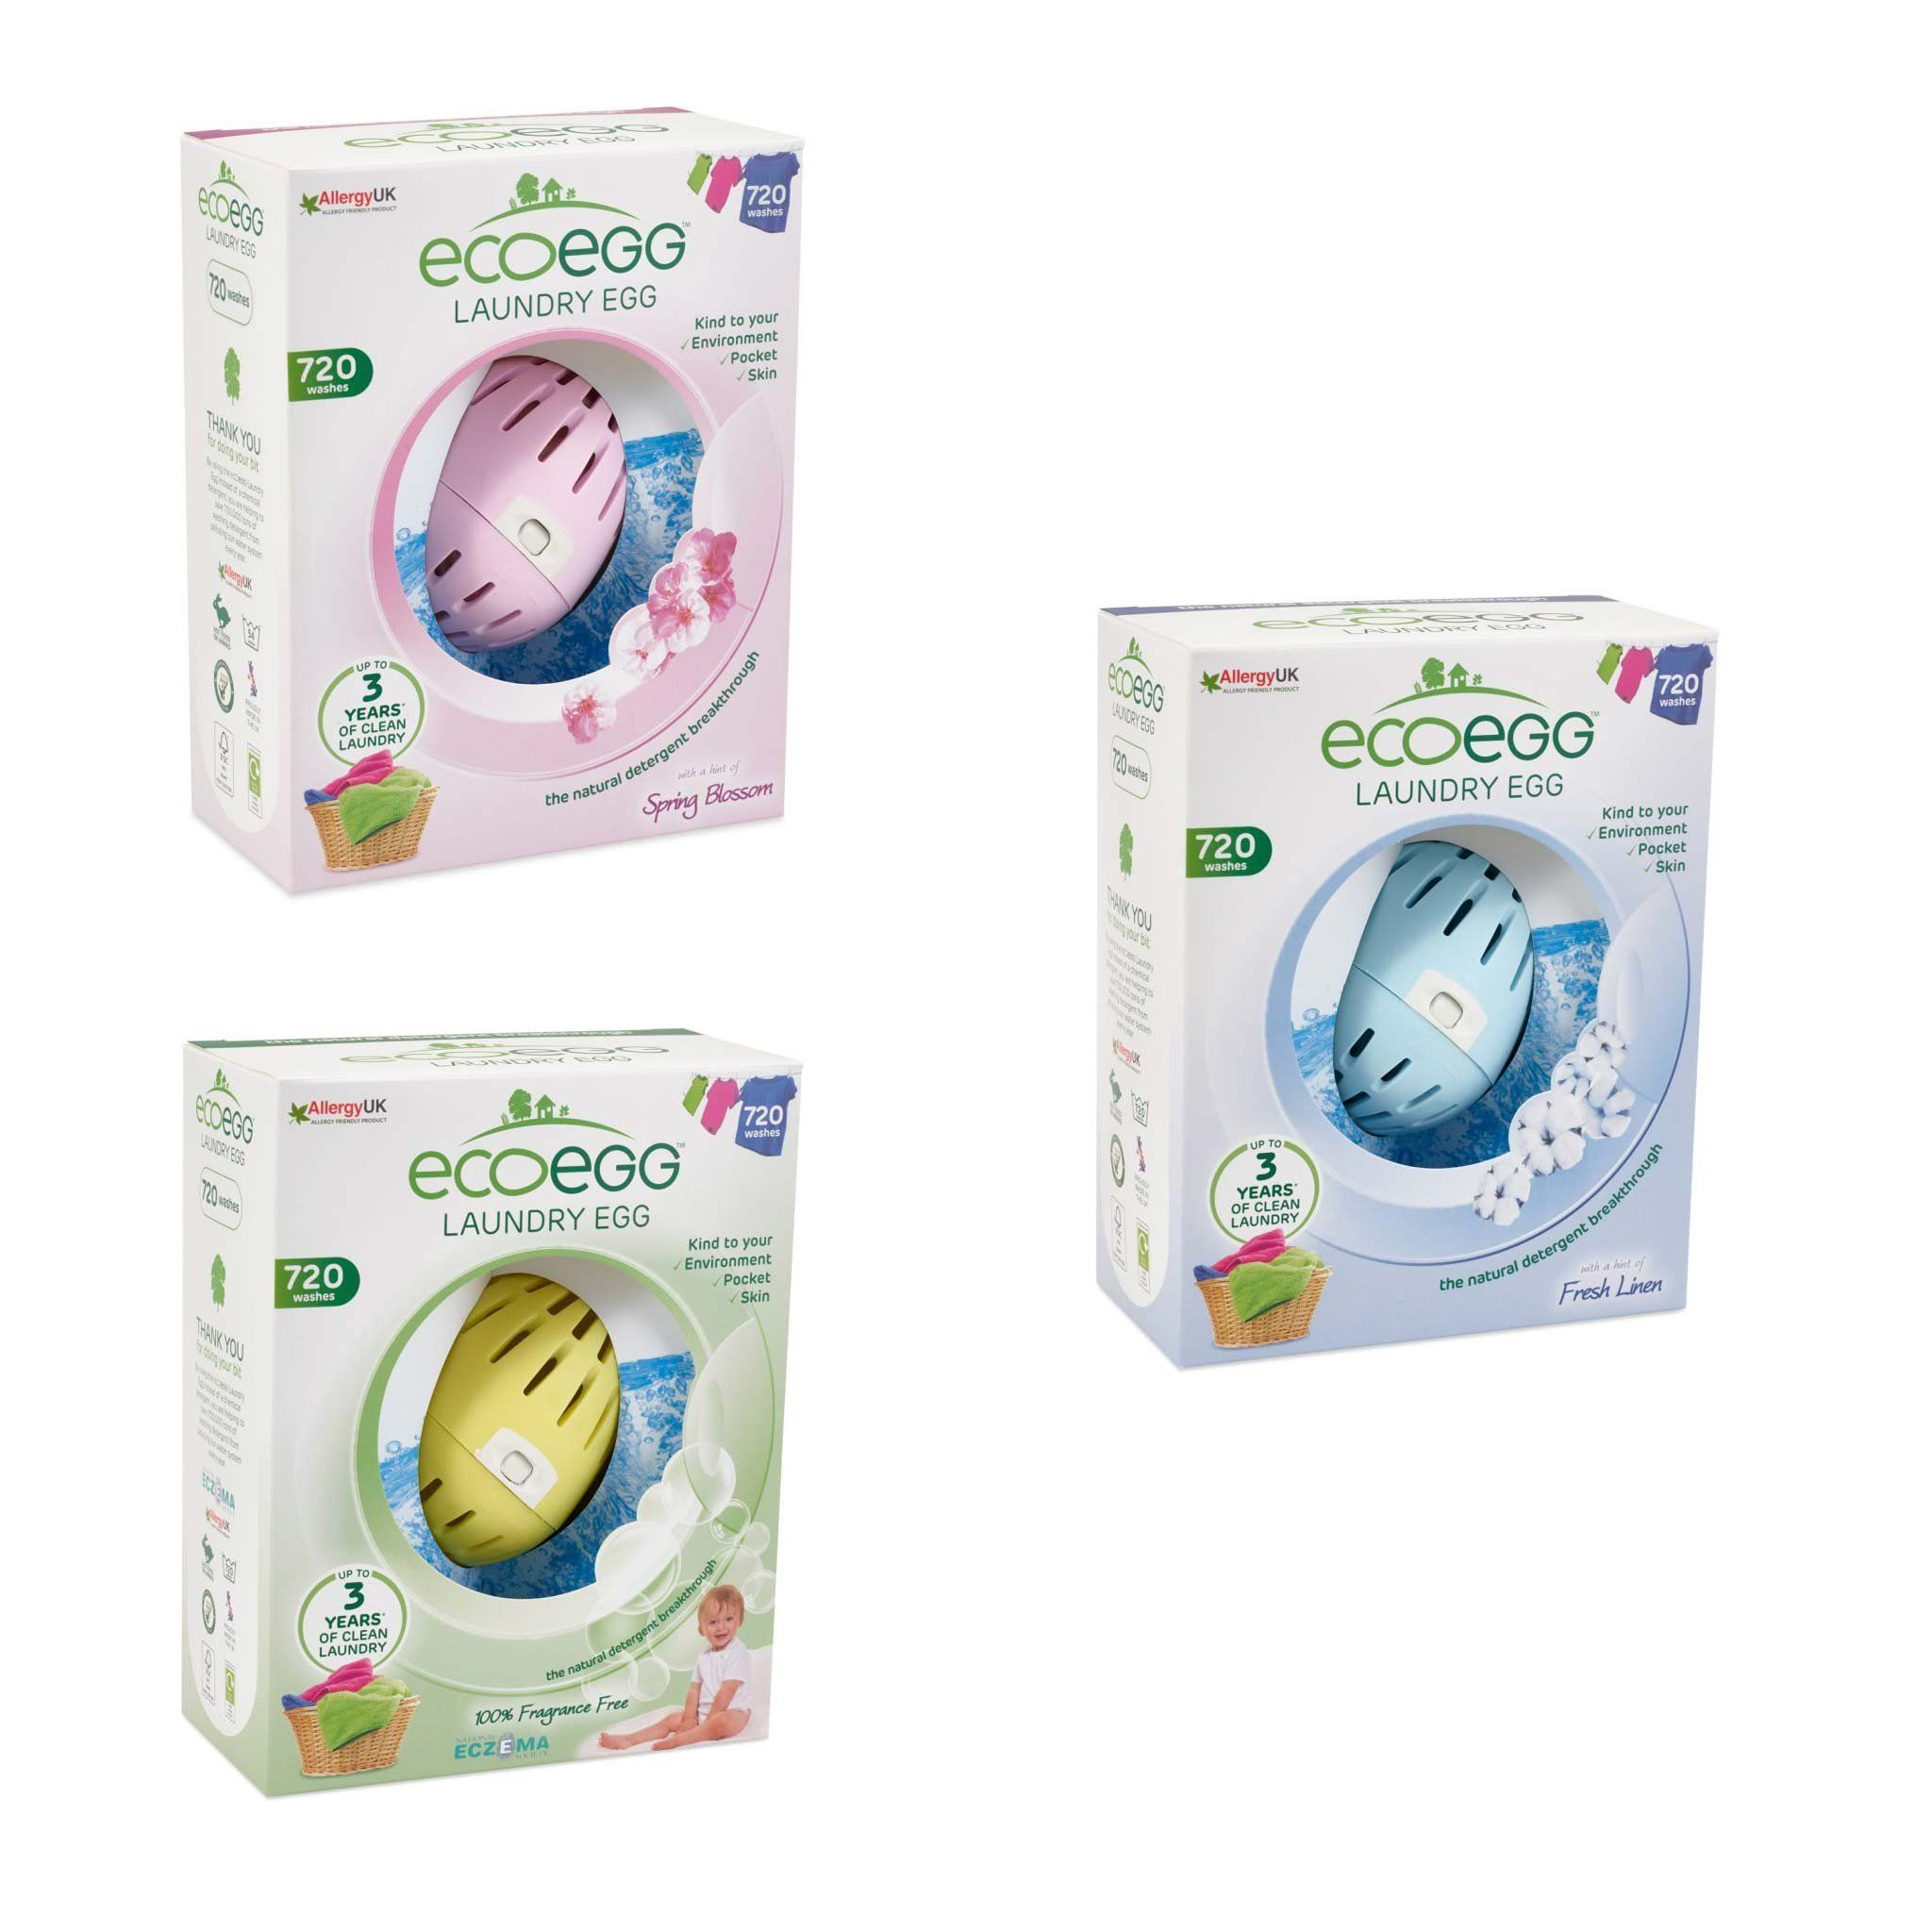 Ecoegg Laundry Egg 720 Washes Asst D Money Saver Fine Food